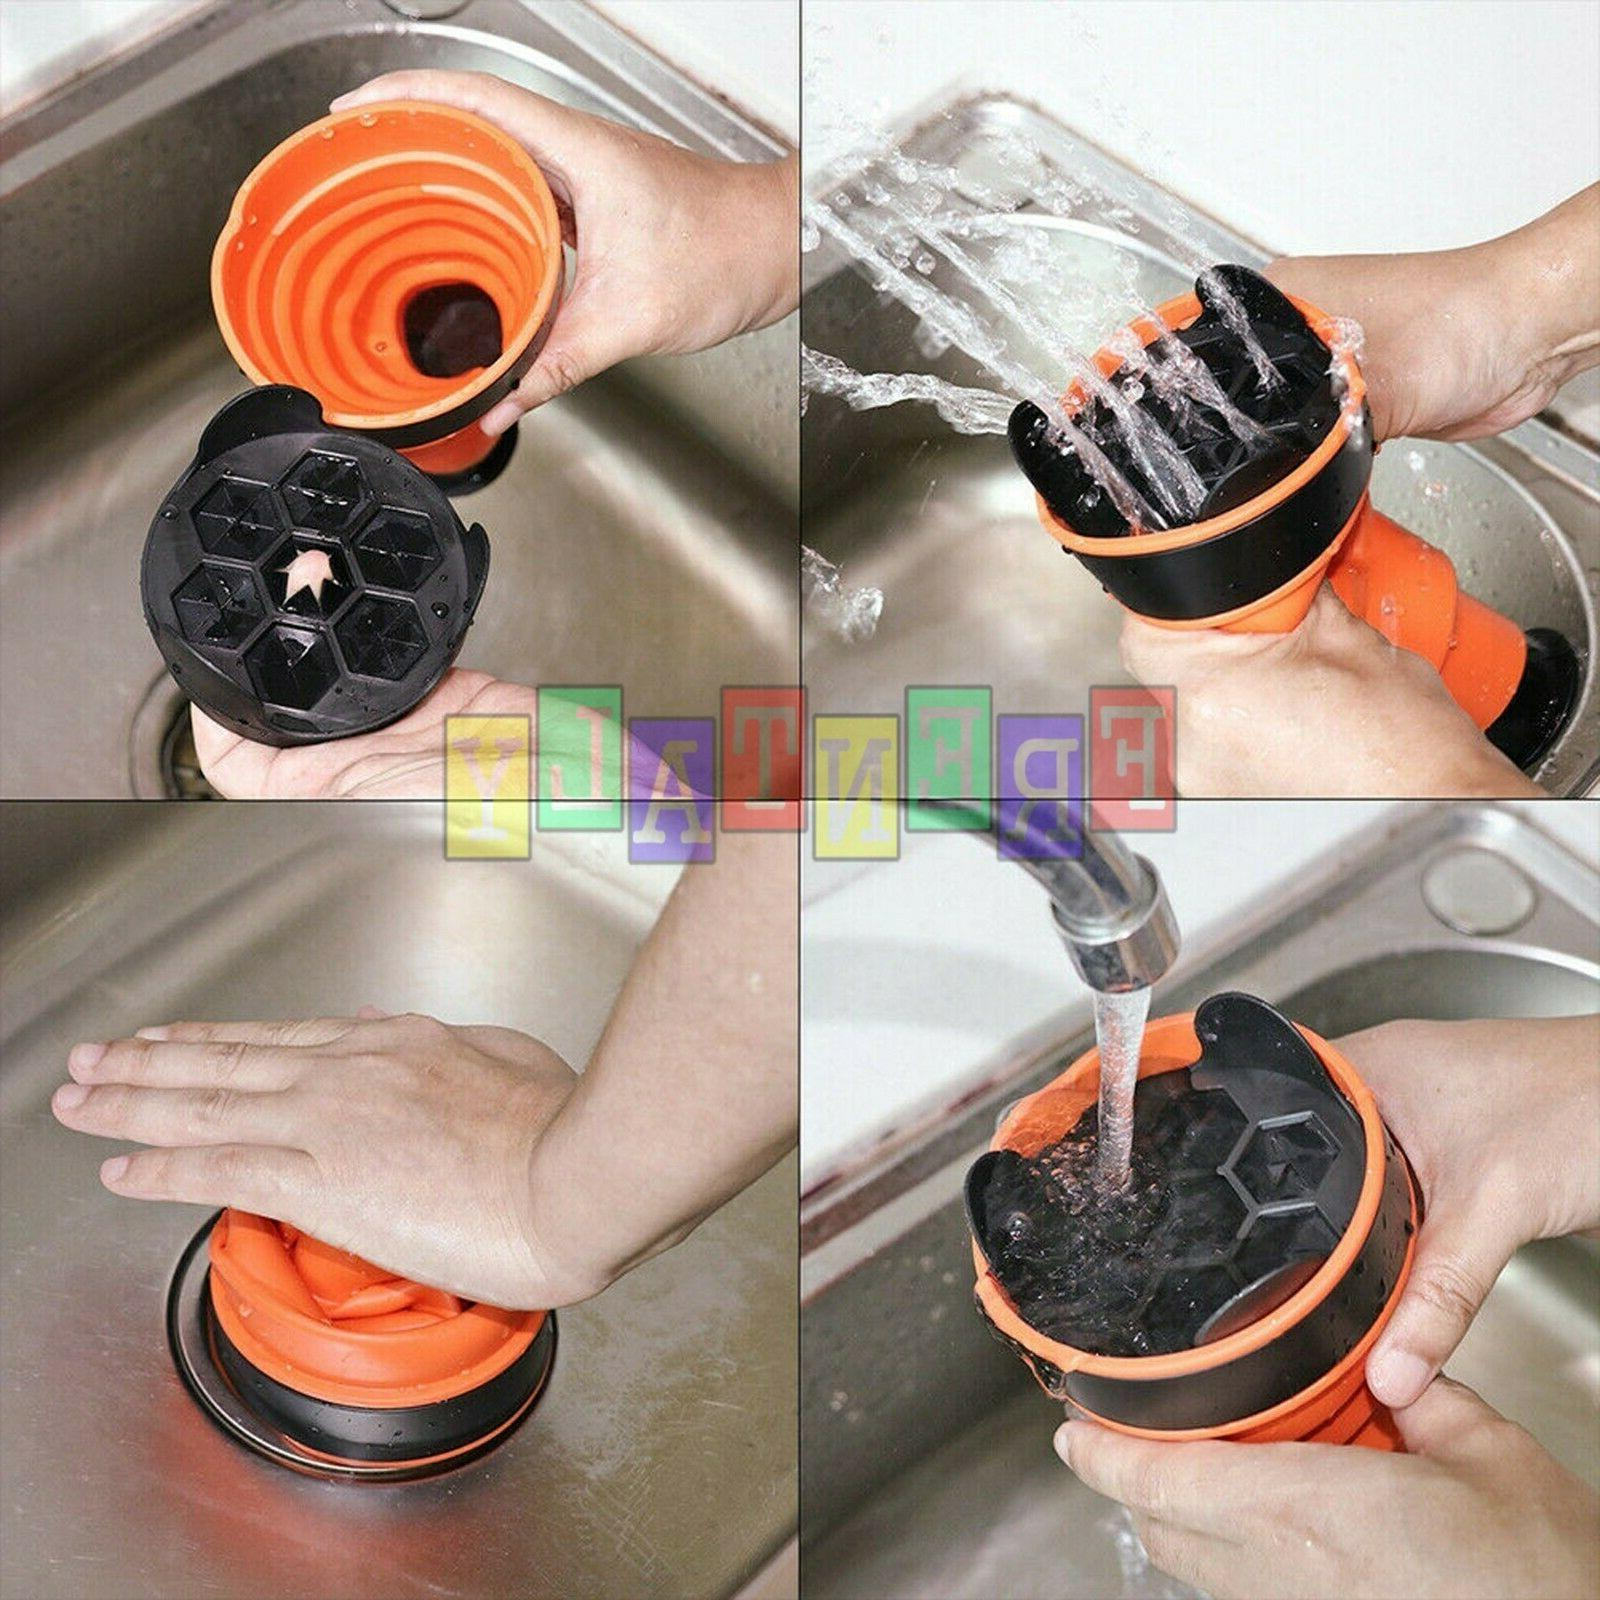 Drain Blaster Air Pump Sink Plunger Clogged Pipes Cleaner